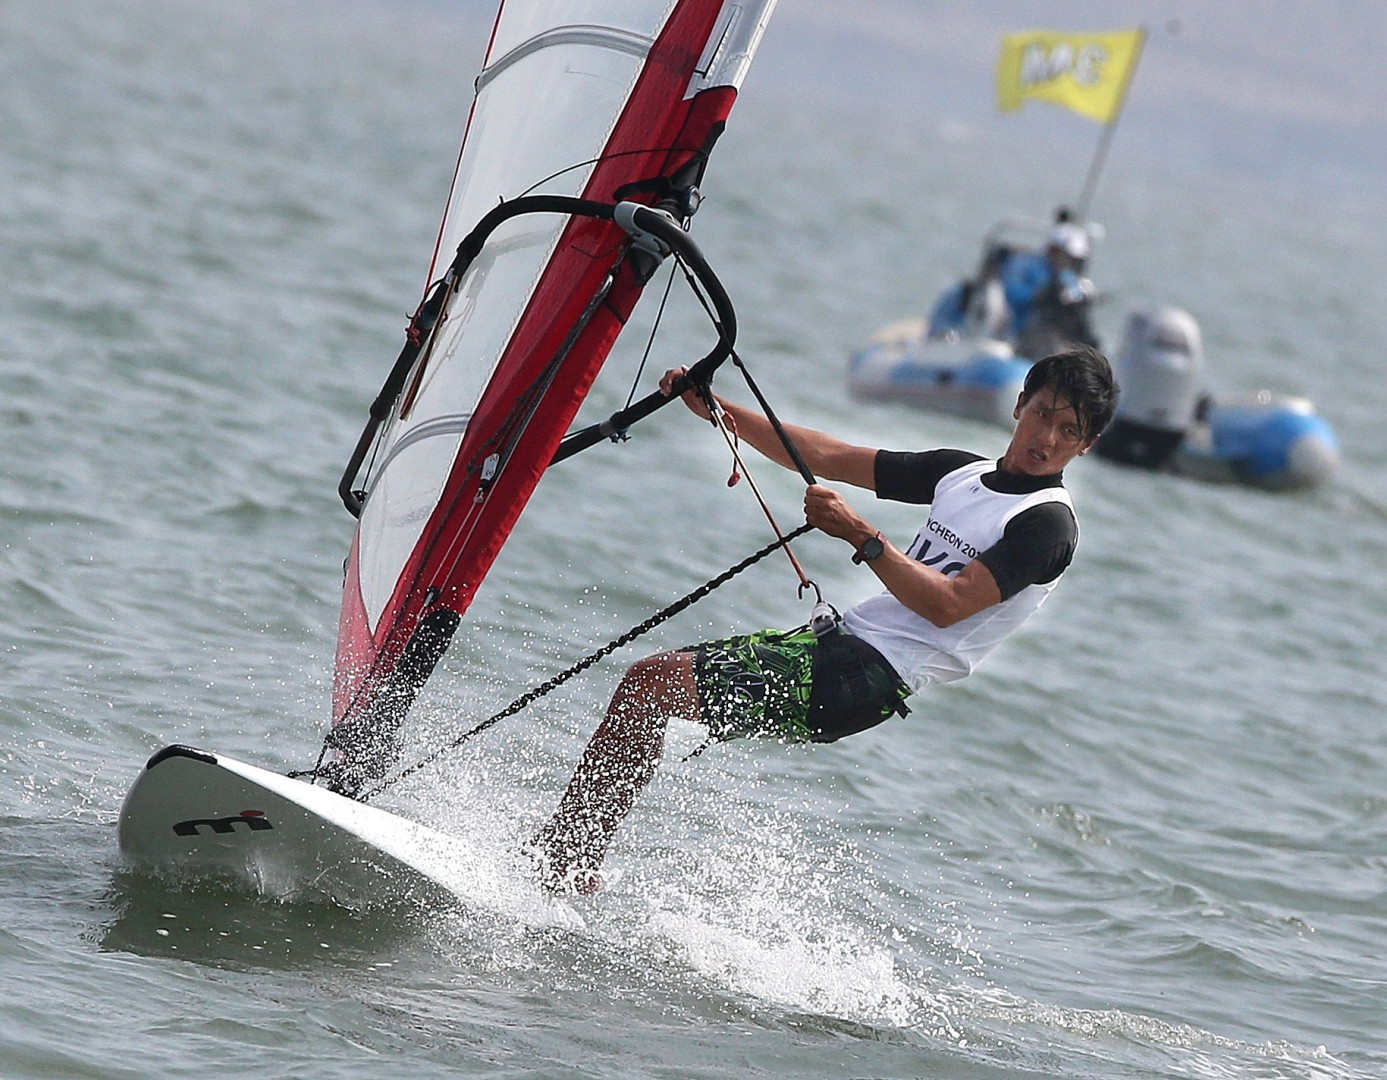 6cffafc13 New equipment provides a stay of execution for windsurfing and makes for  more excitement at Olympic Games | South China Morning Post